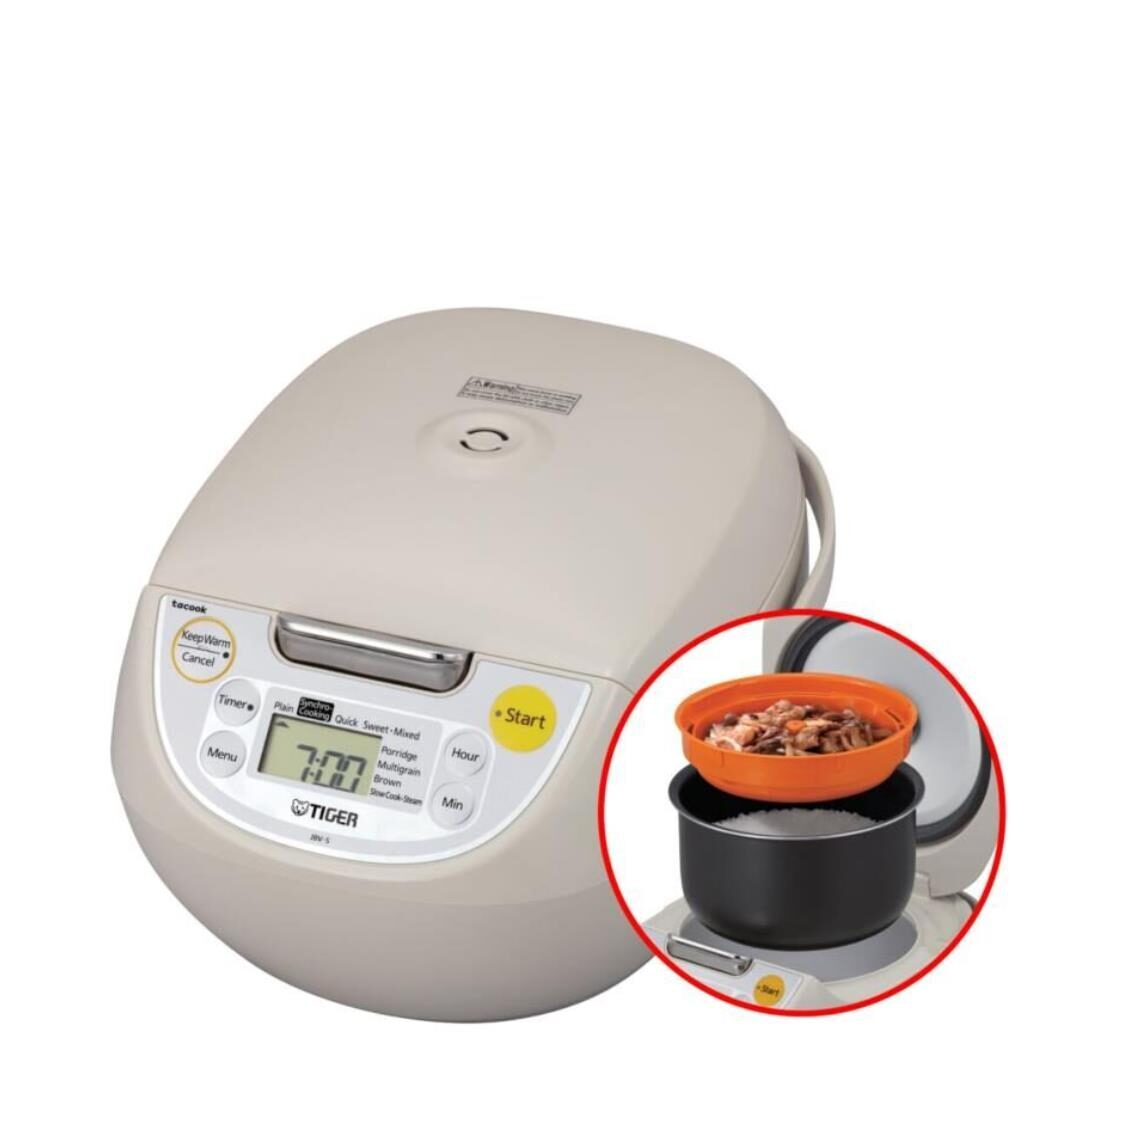 Tiger 18L 4-in-1 Tacook Rice Cooker - Made in Japan JBV-S18S